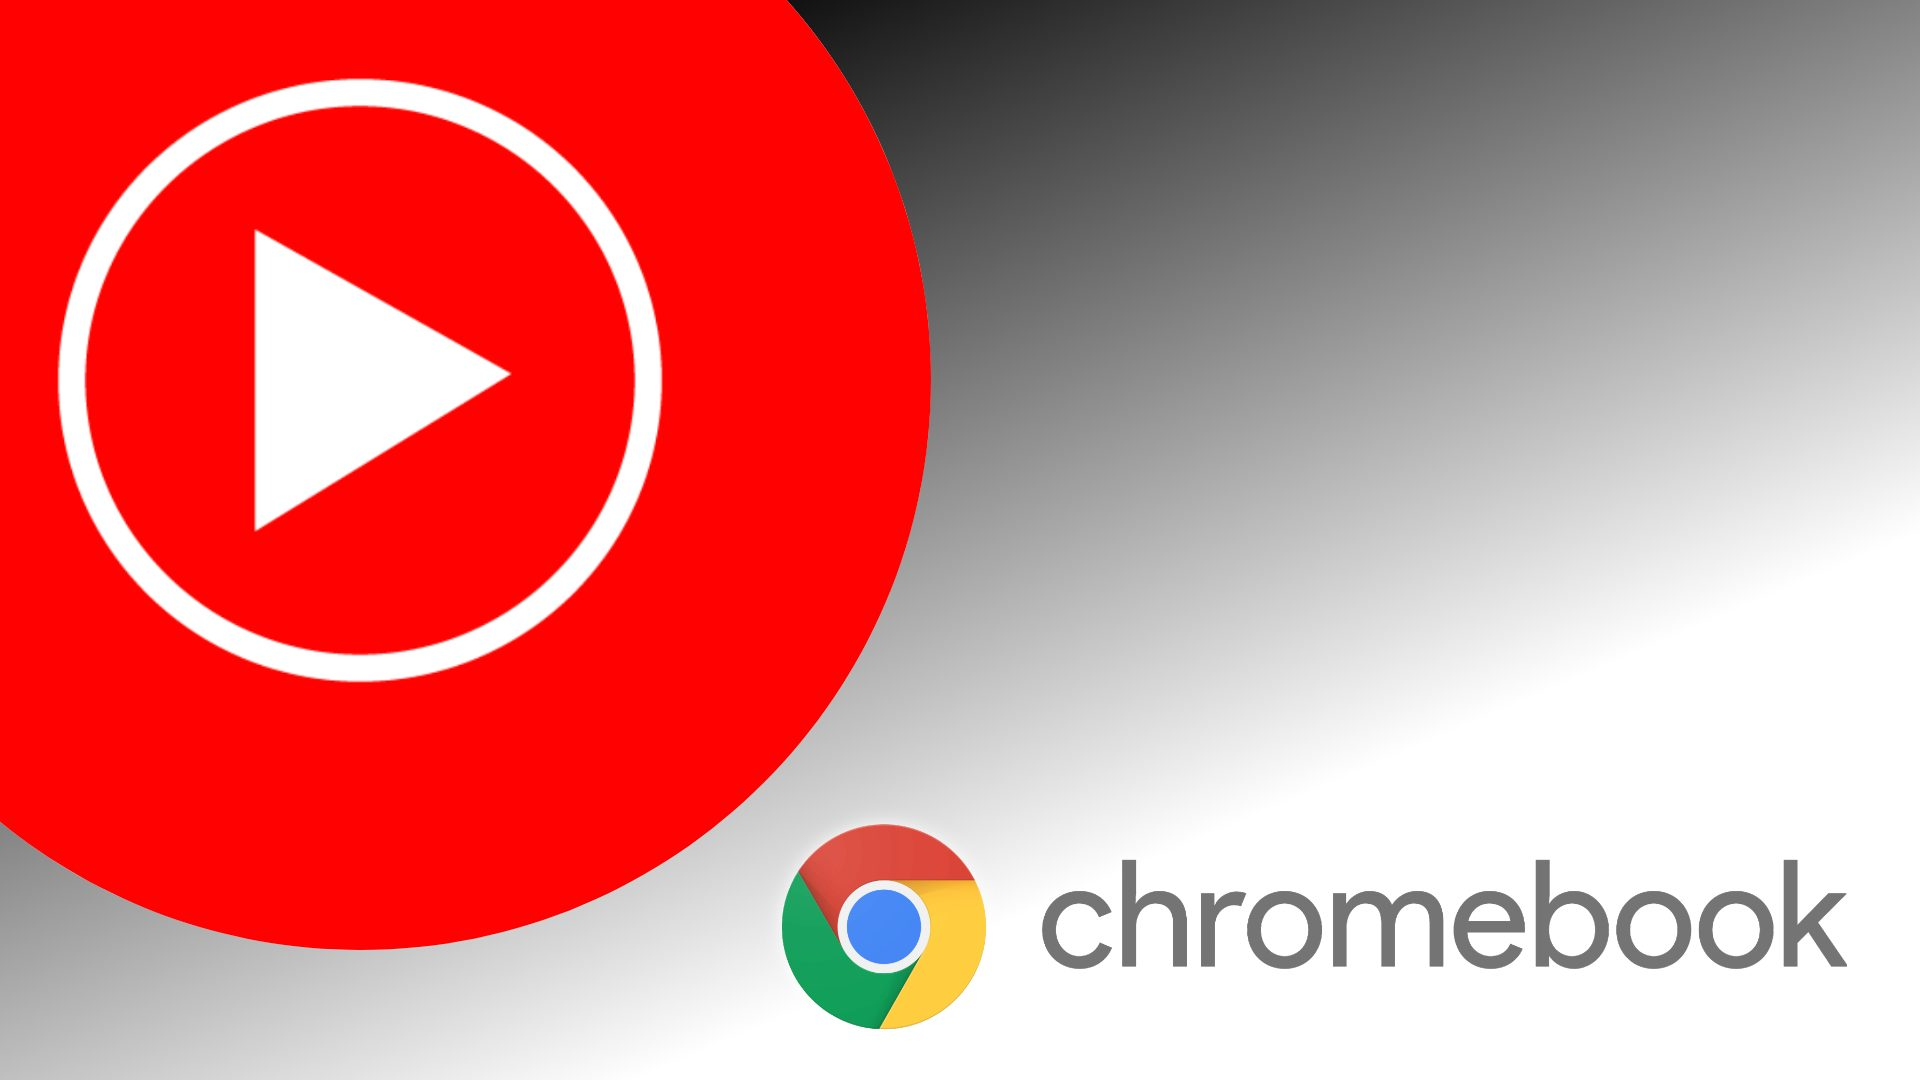 Google releases a dedicated YouTube Music Chromebook PWA in the Play Store